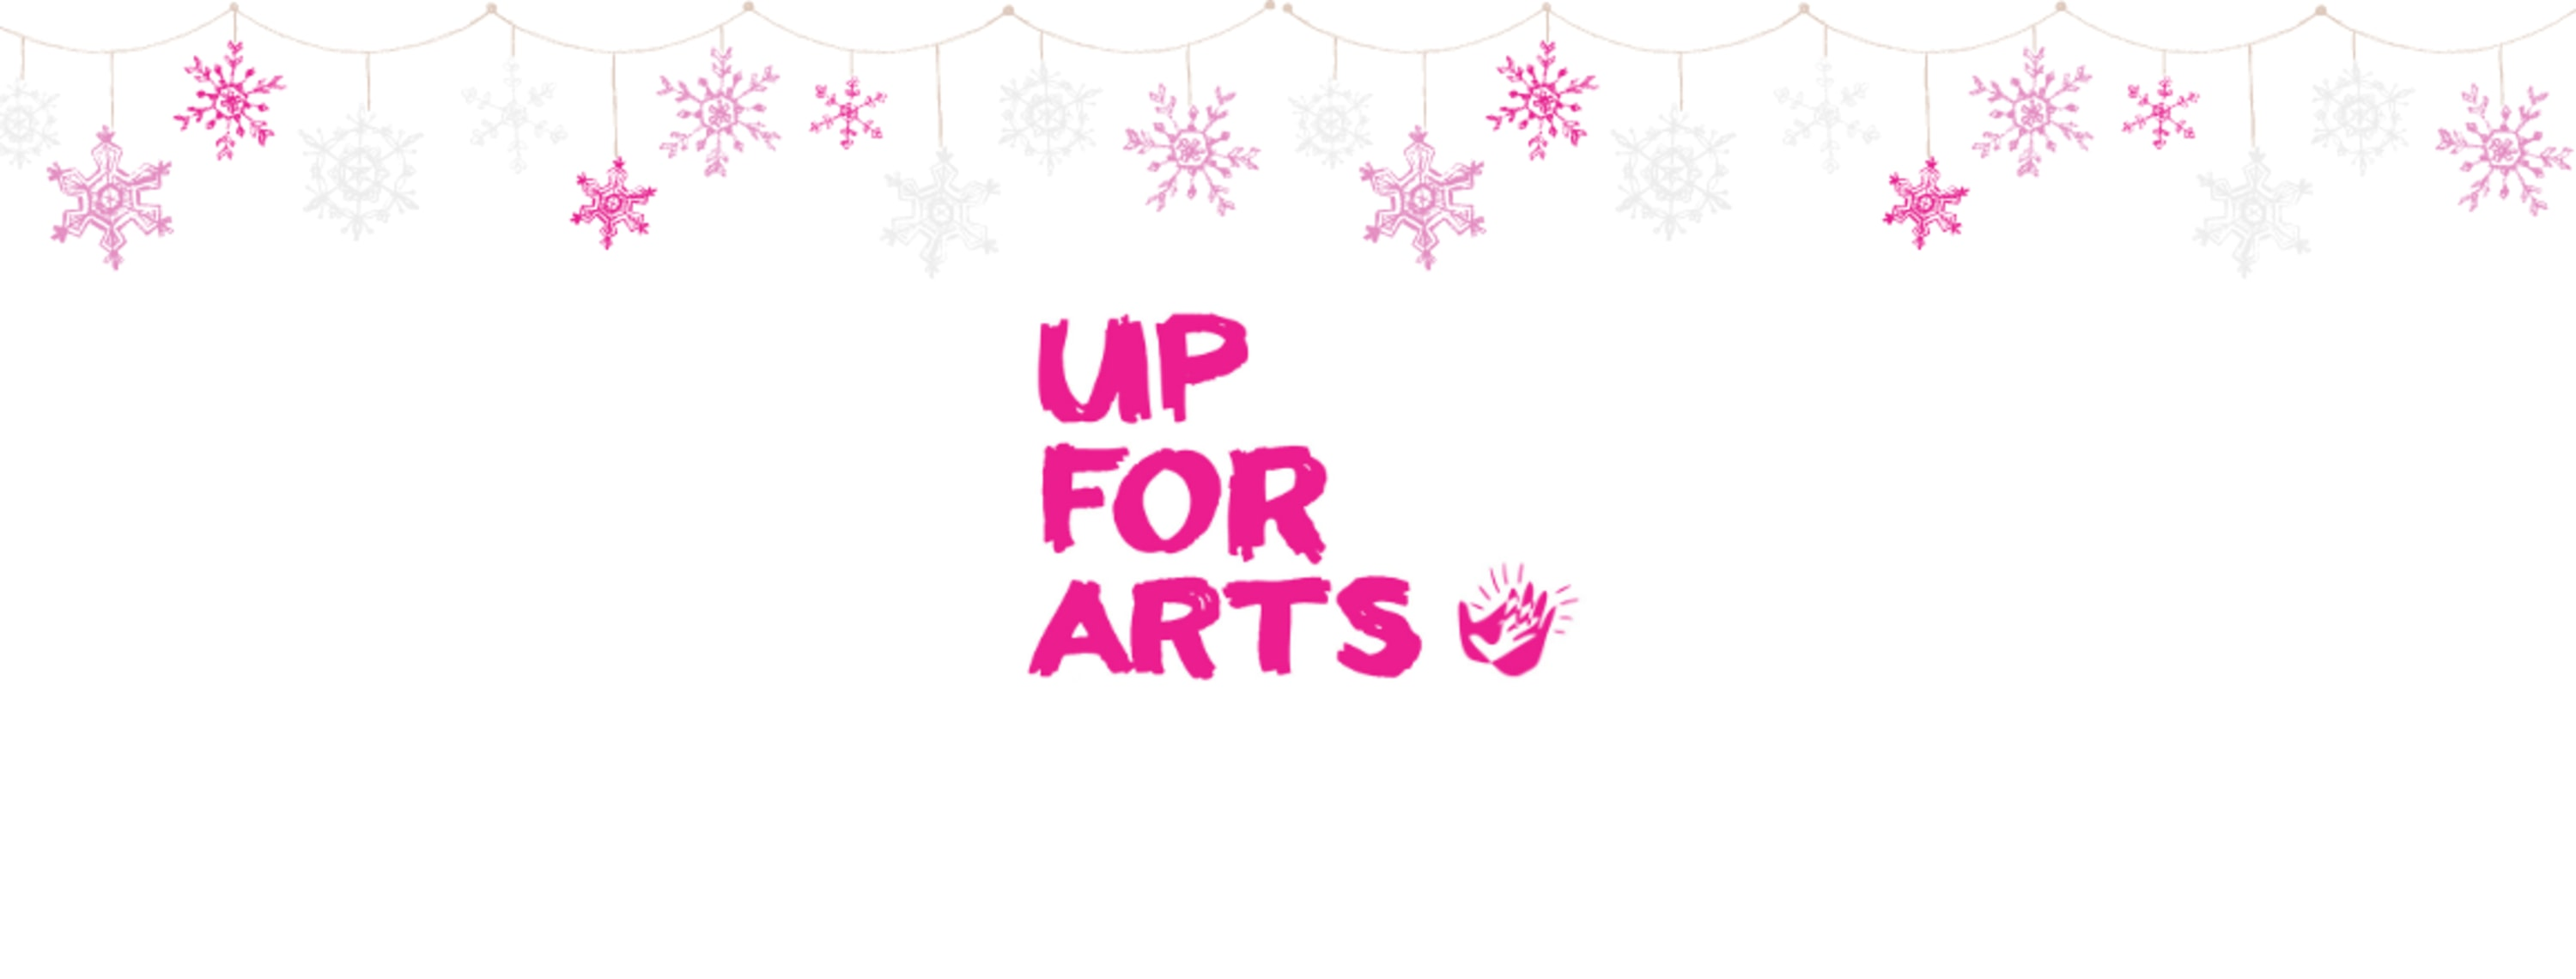 Winter Creativity on Air - Up for Arts